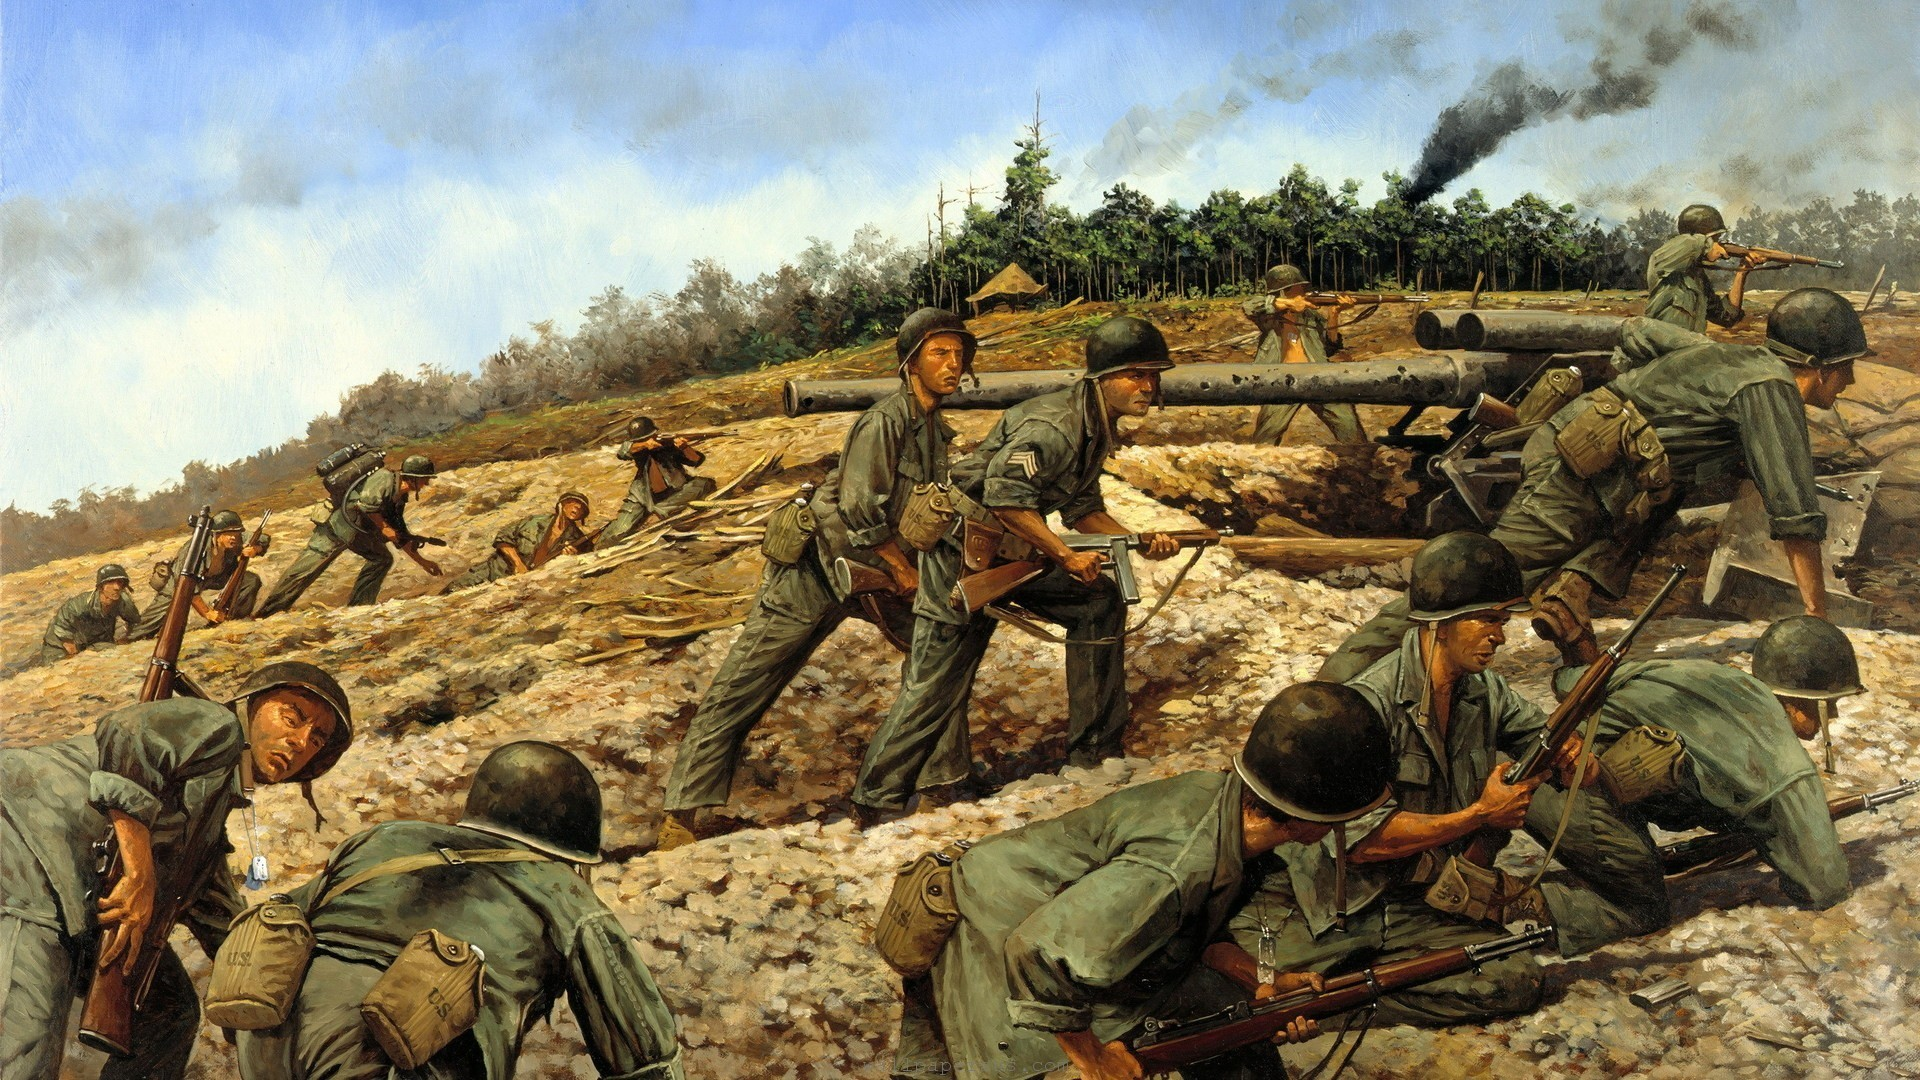 Smoke Soldiers War Sand Military Jungle Vietnam Artillery Wallpapers  Resolution : Filesize : kB, Added on August Tagged : smoke